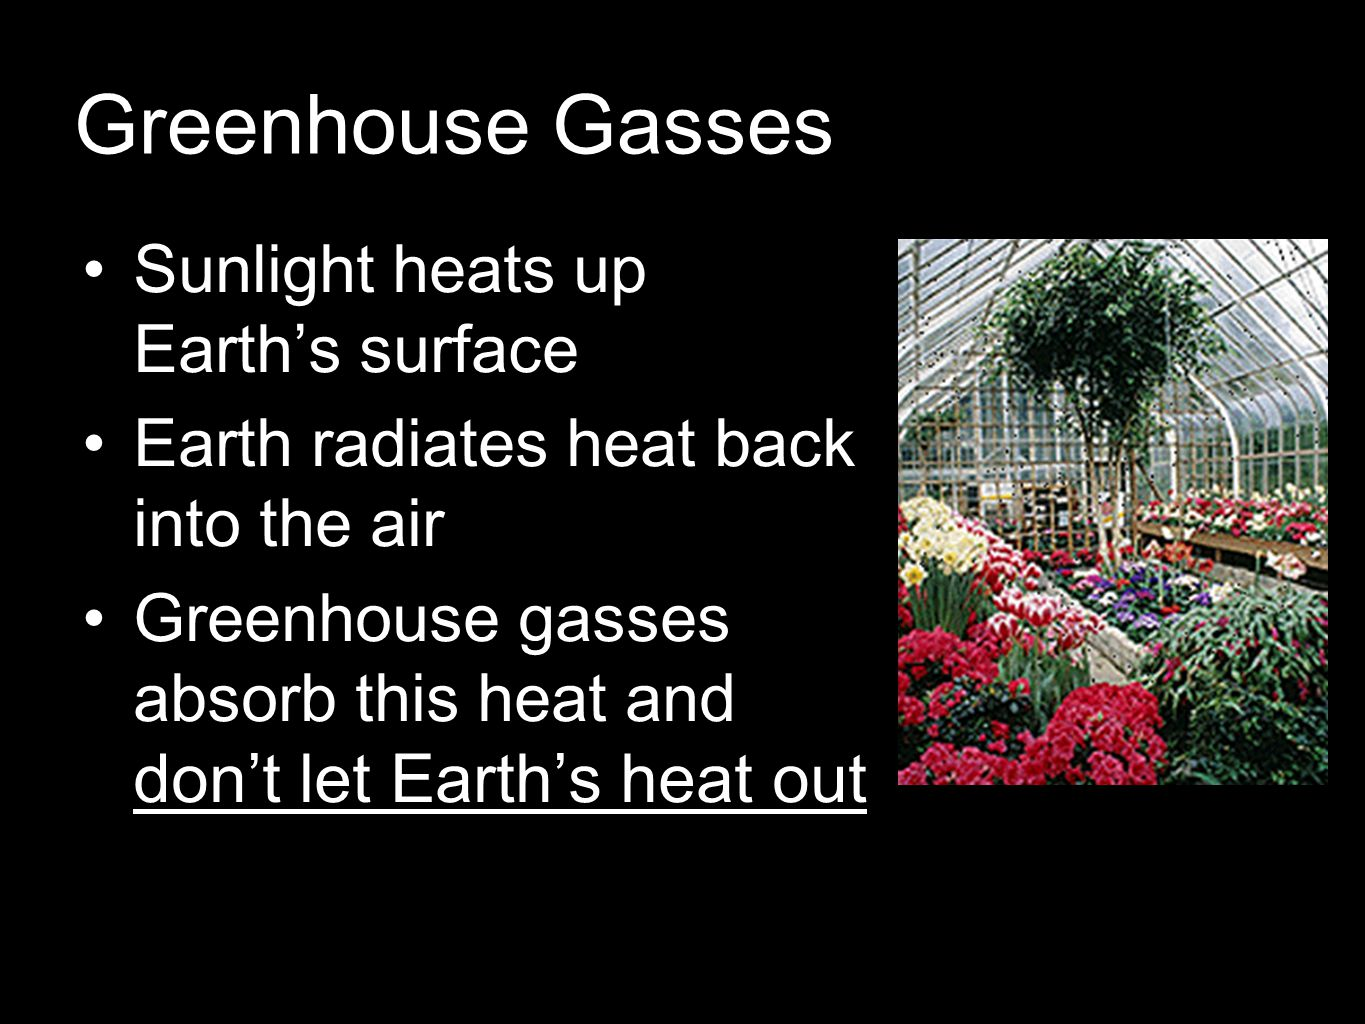 Greenhouse Gasses Sunlight heats up Earth's surface Earth radiates heat back into the air Greenhouse gasses absorb this heat and don't let Earth's heat out